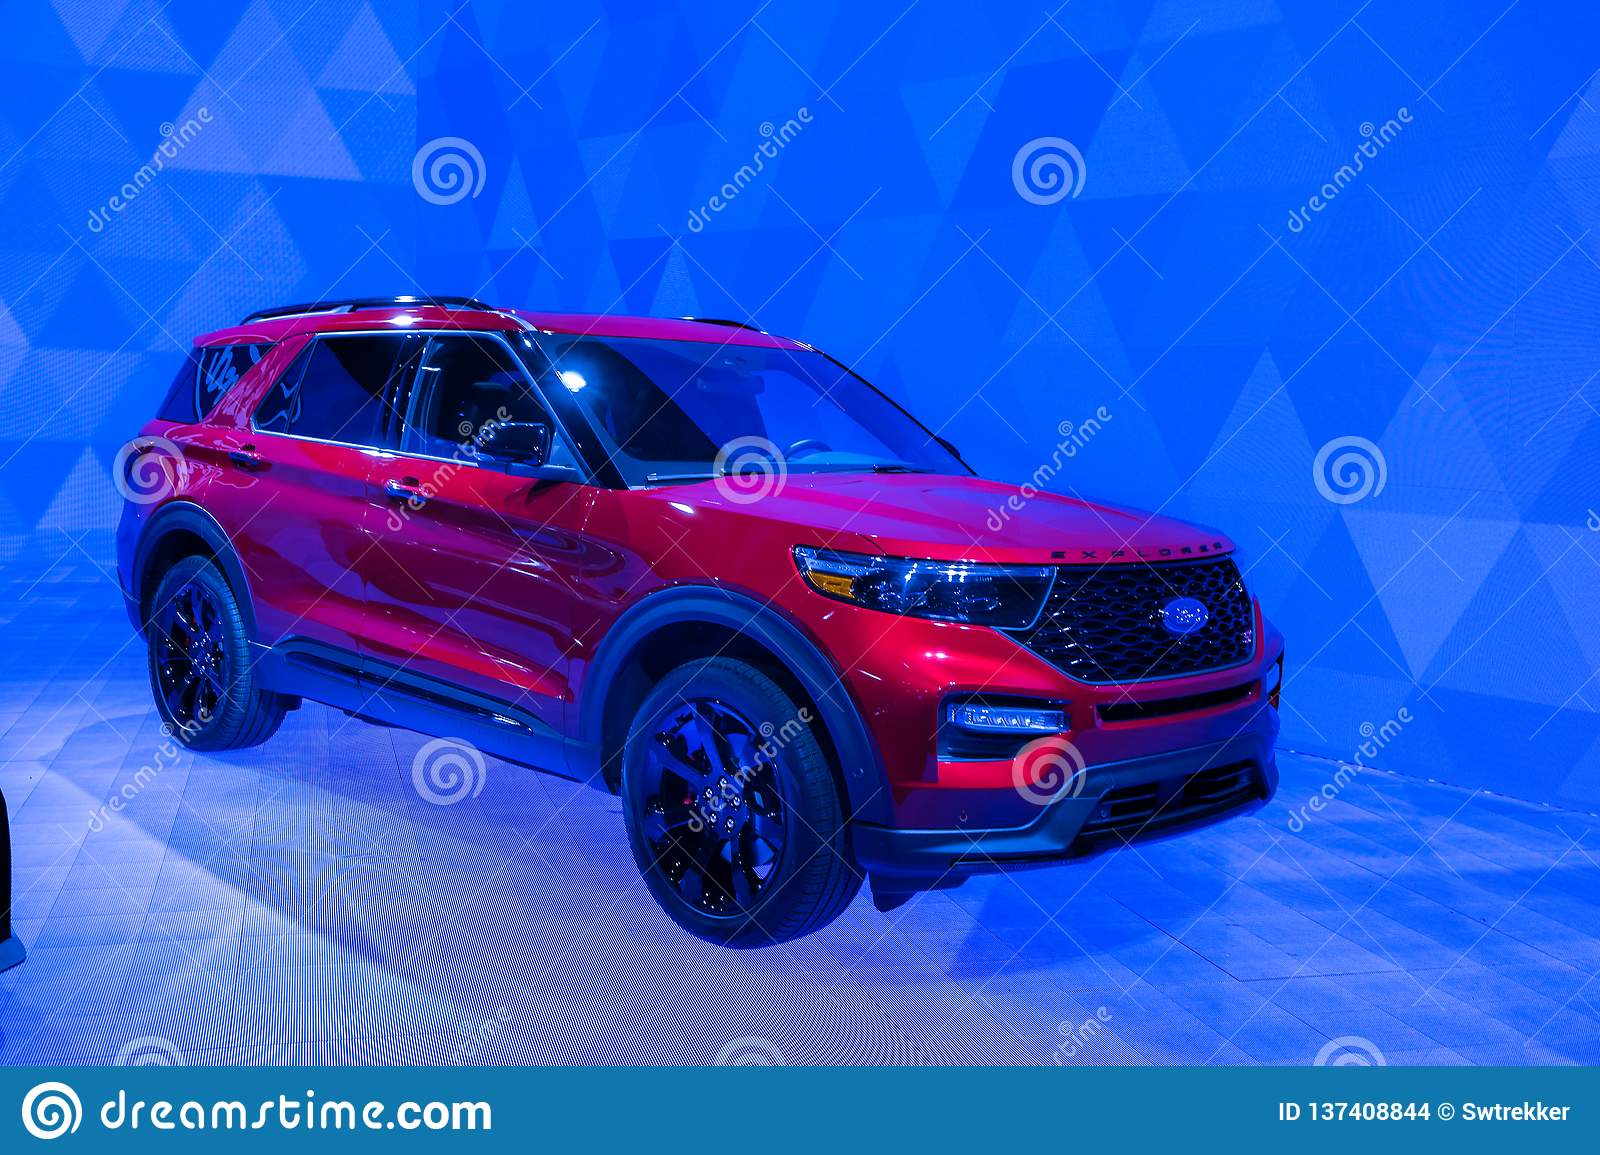 North American International Auto Show 2020.2020 Ford Explorer Editorial Stock Image Image Of American